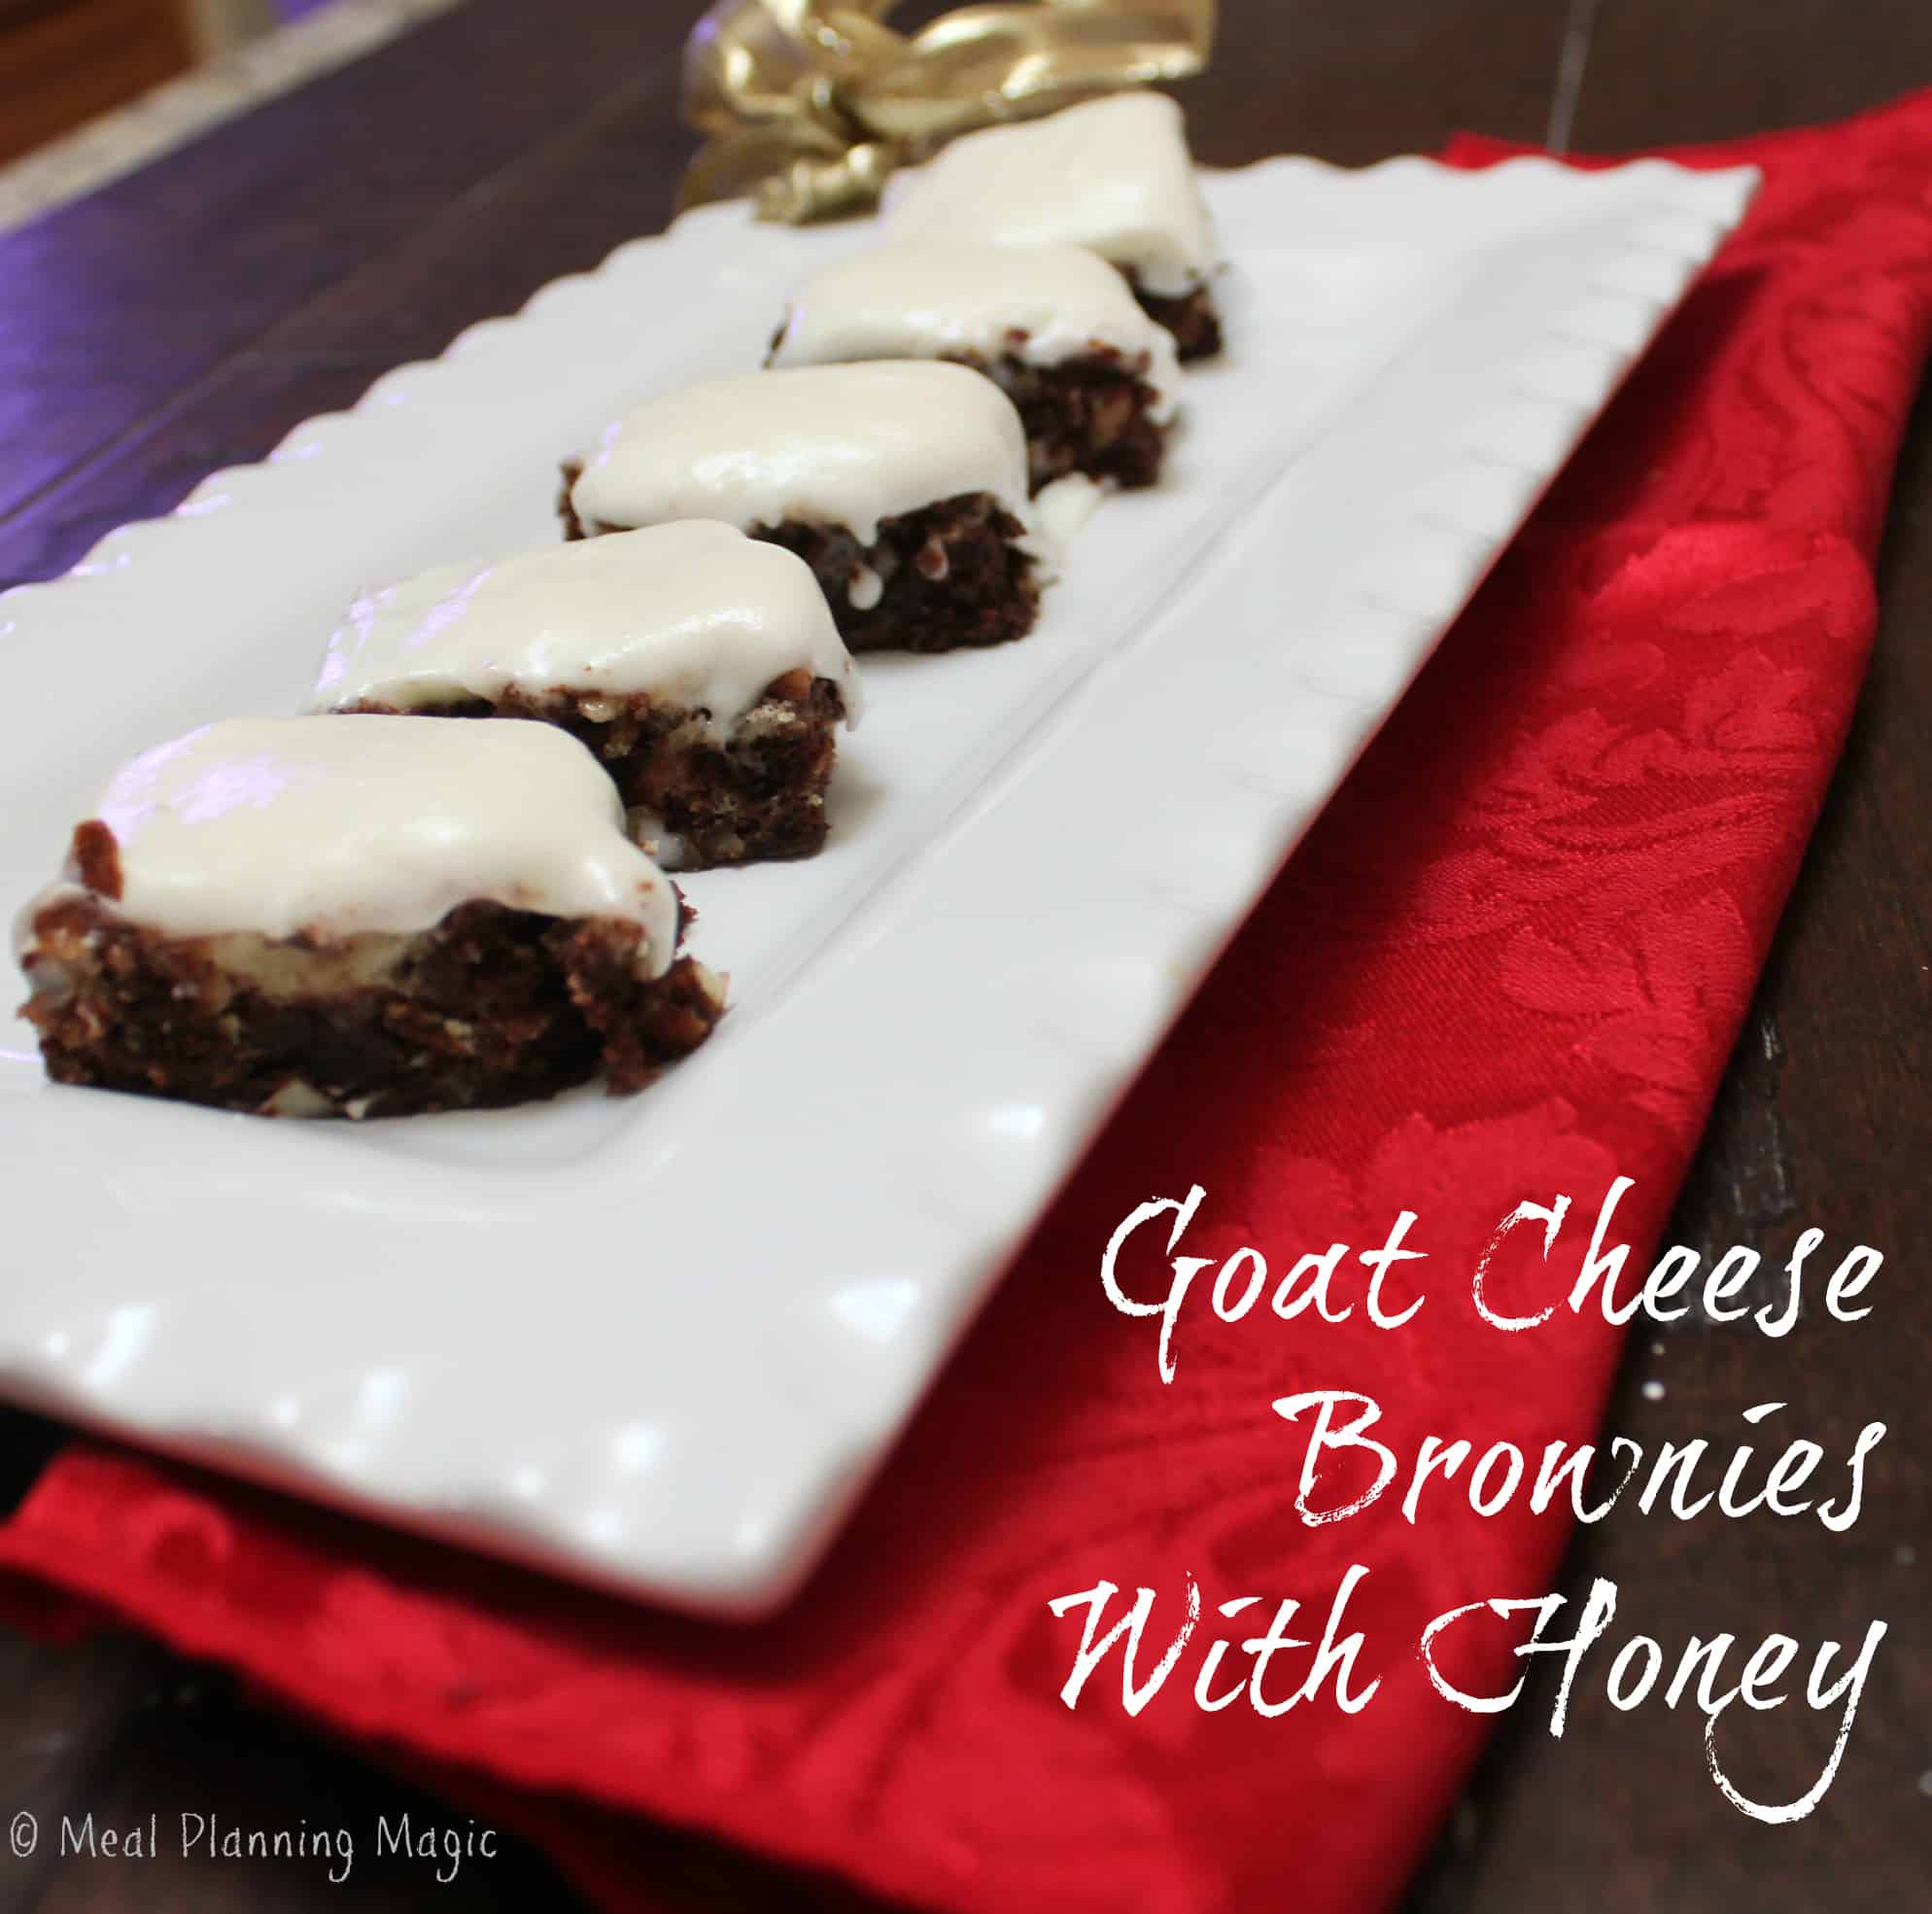 Goat Cheese Brownies With Honey - Meal Planning Magic